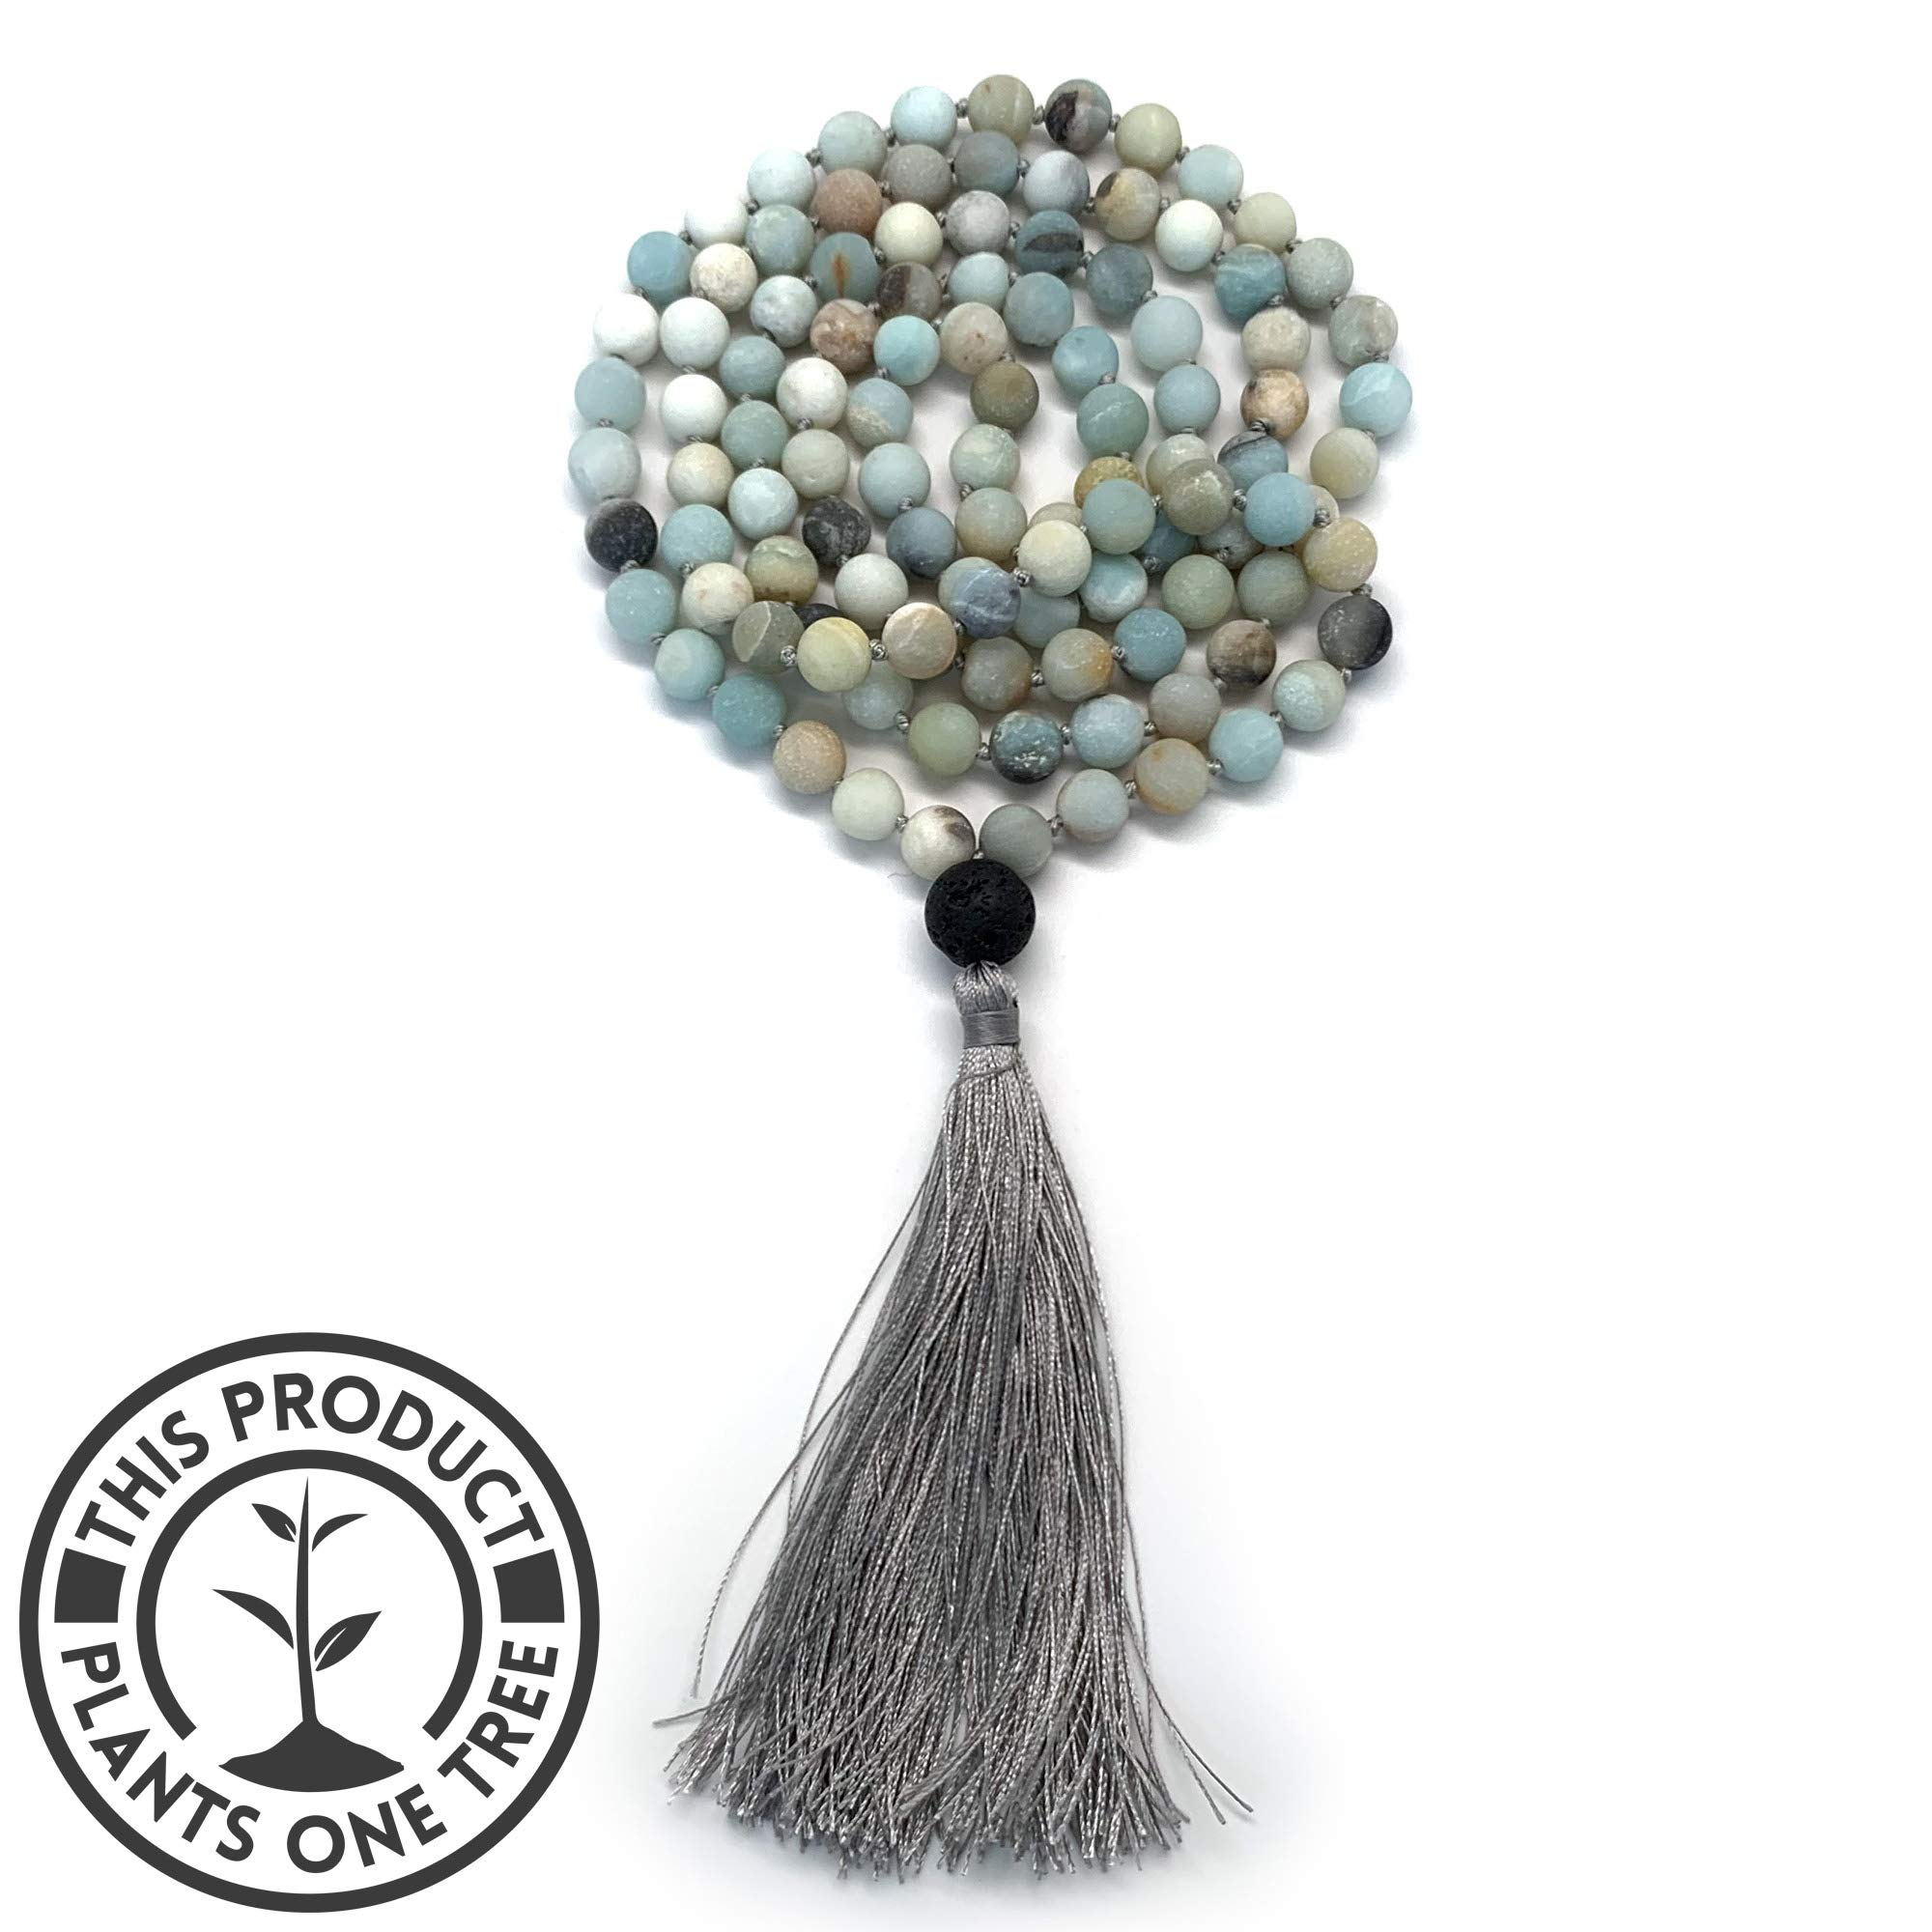 108 Bead Mala Necklace & Bracelet With Tassel By Aspen & Eve - 8mm Stone Beads - Strand 108 Beads Necklace For Mindfulness & Yoga (Matte Amazonite) by Aspen & Eve